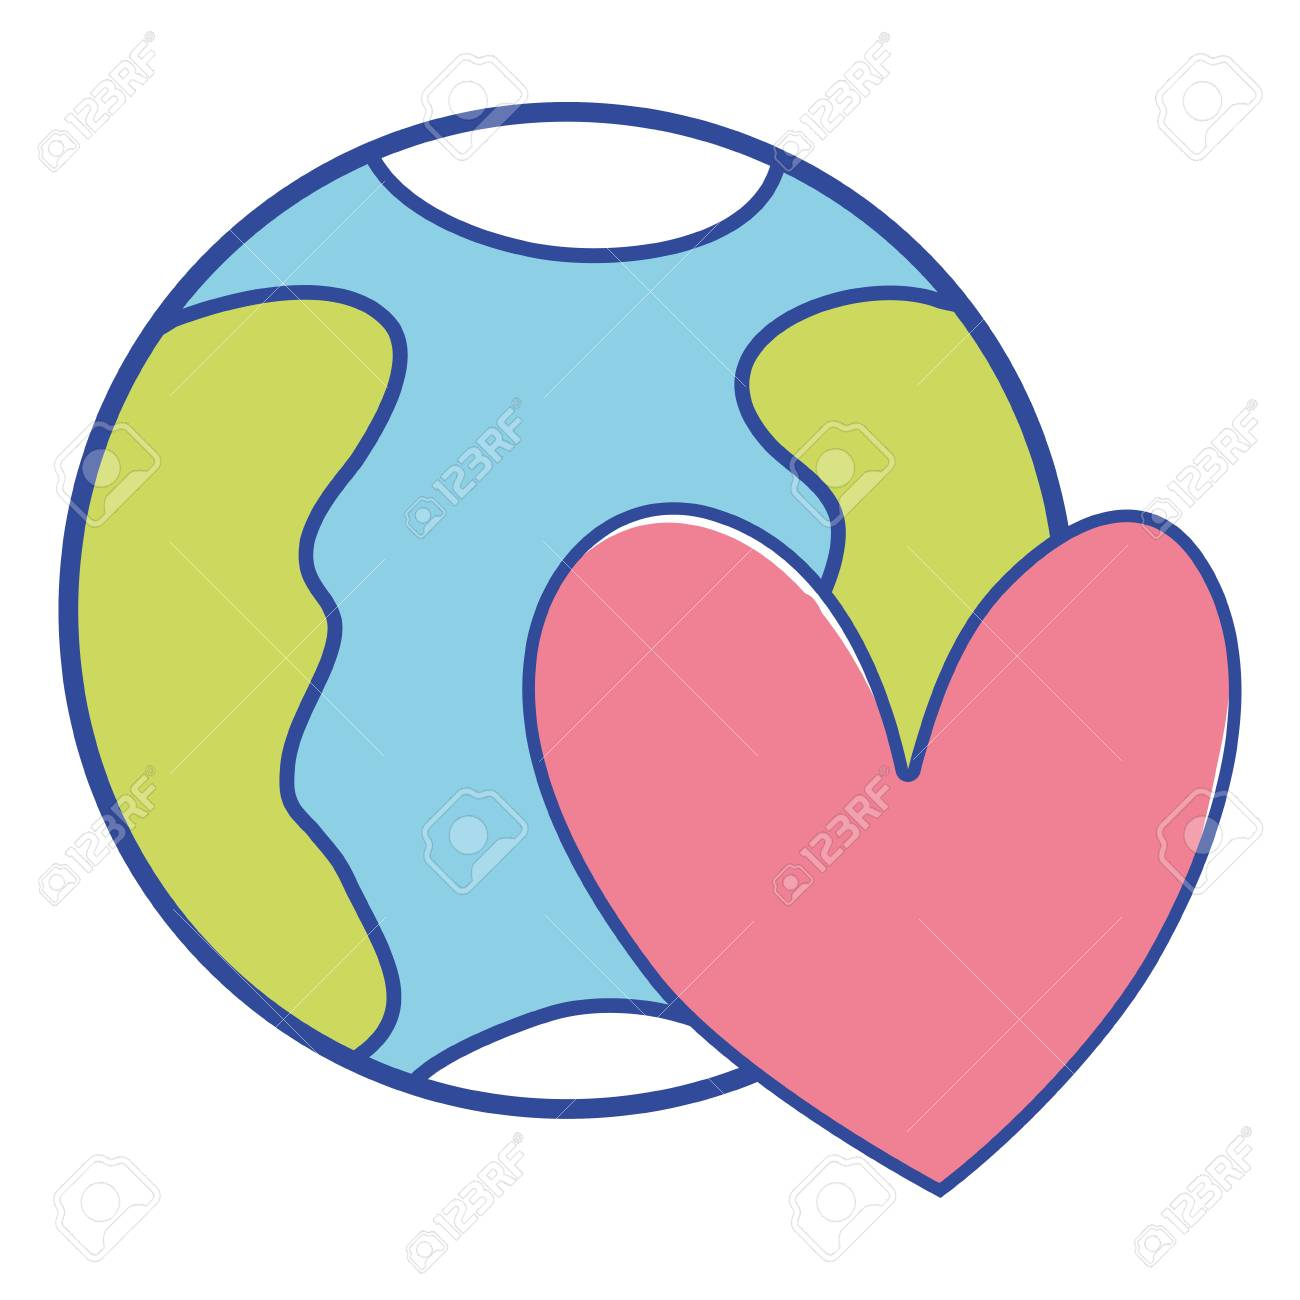 earth planet with heart symbol of love vector illustration.